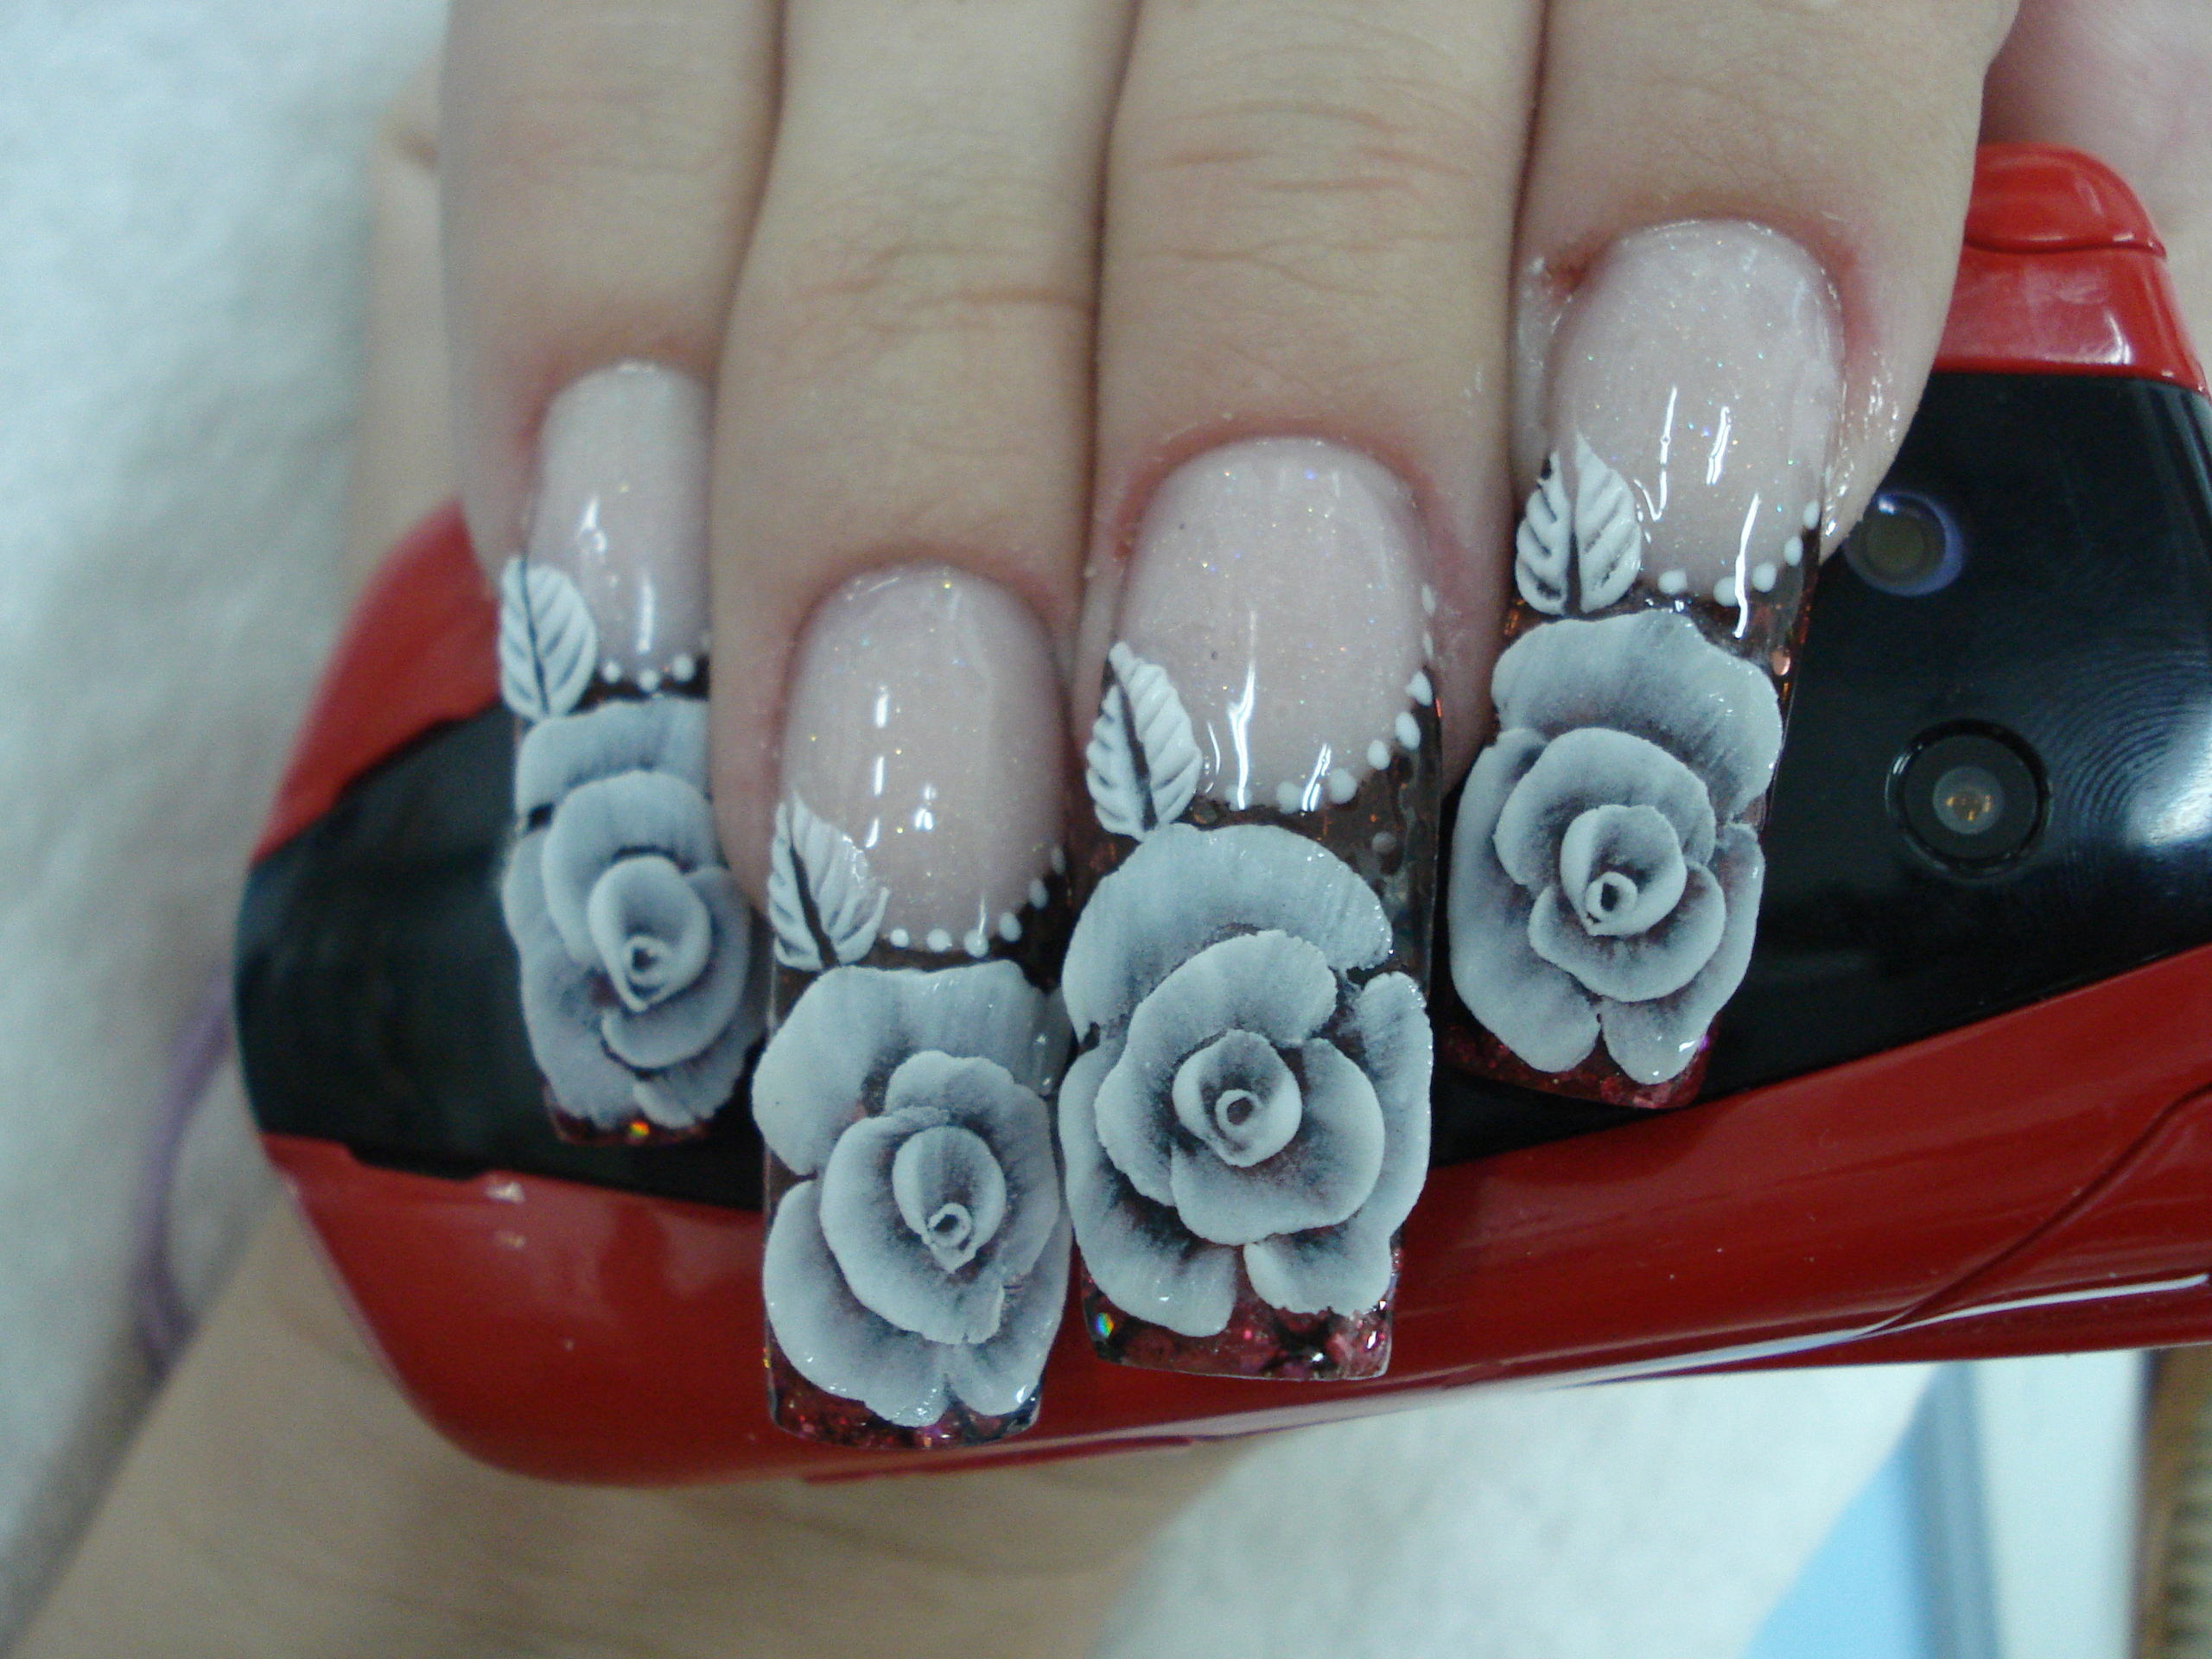 Awesome Nail Arts